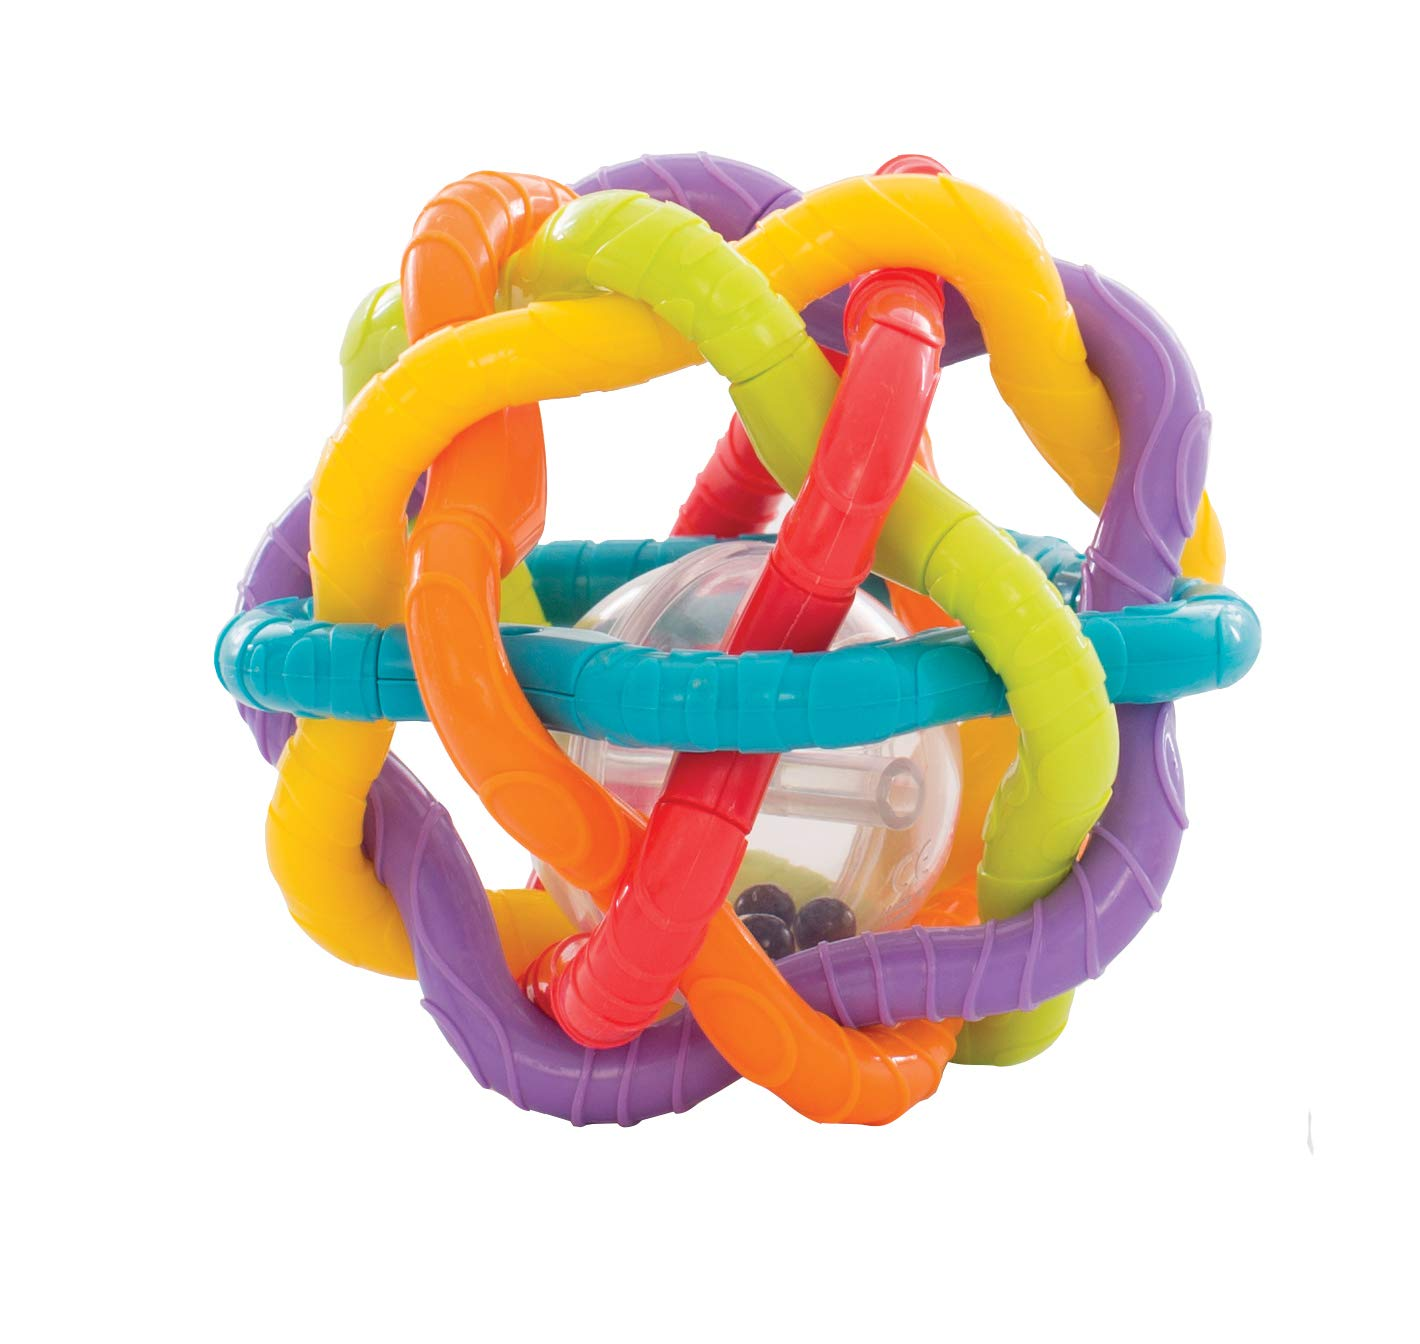 Playgro Bendy Ball 0184557